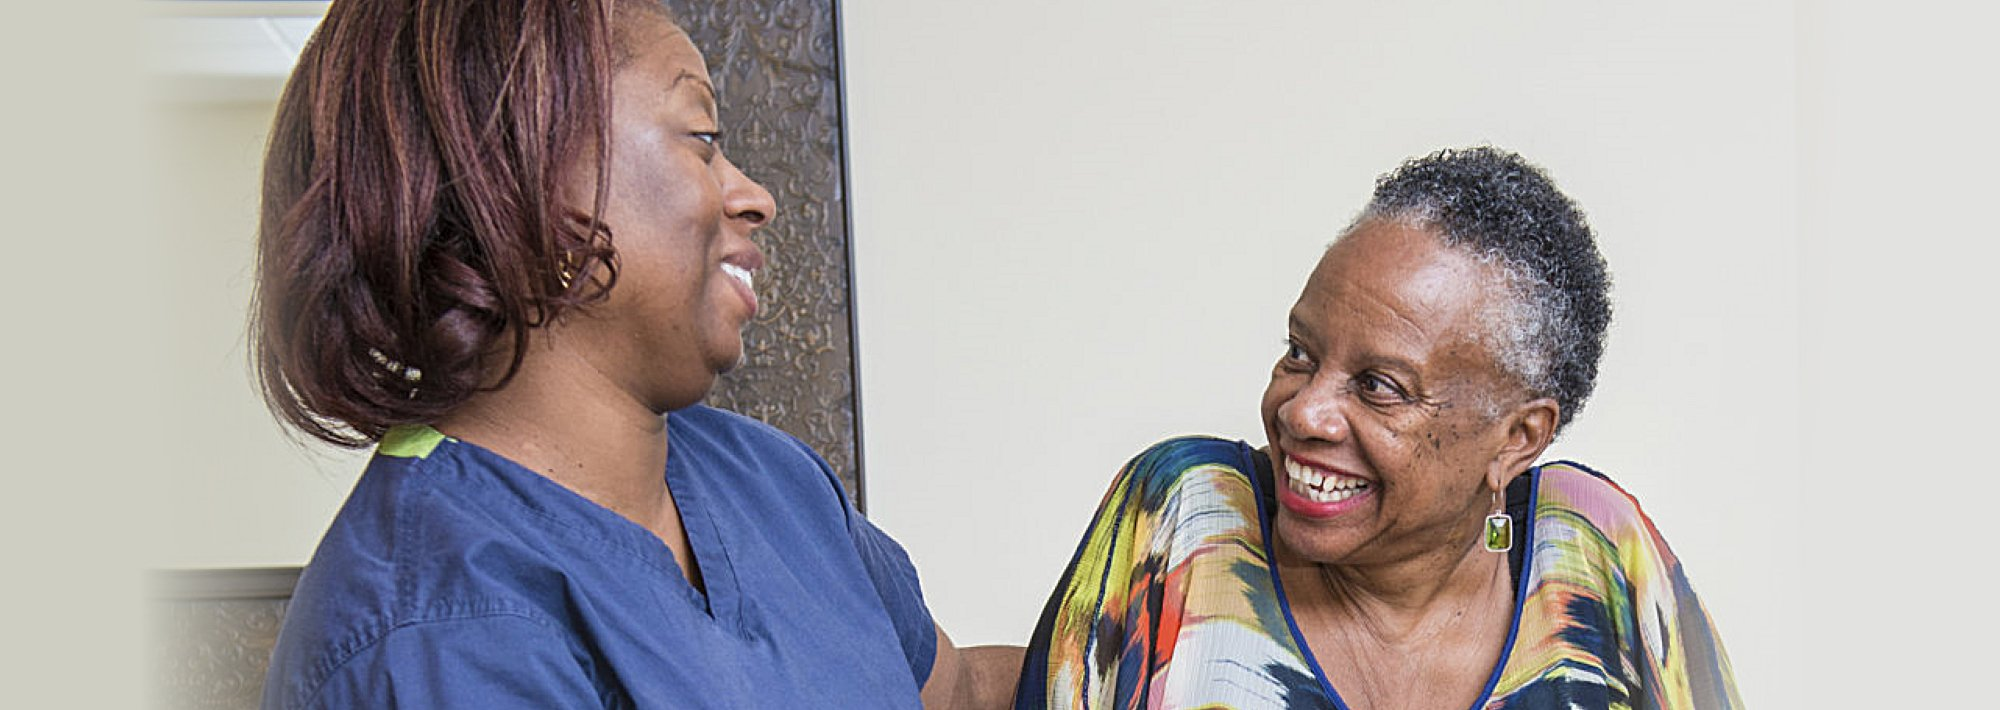 Caregiver and senior talking to each other